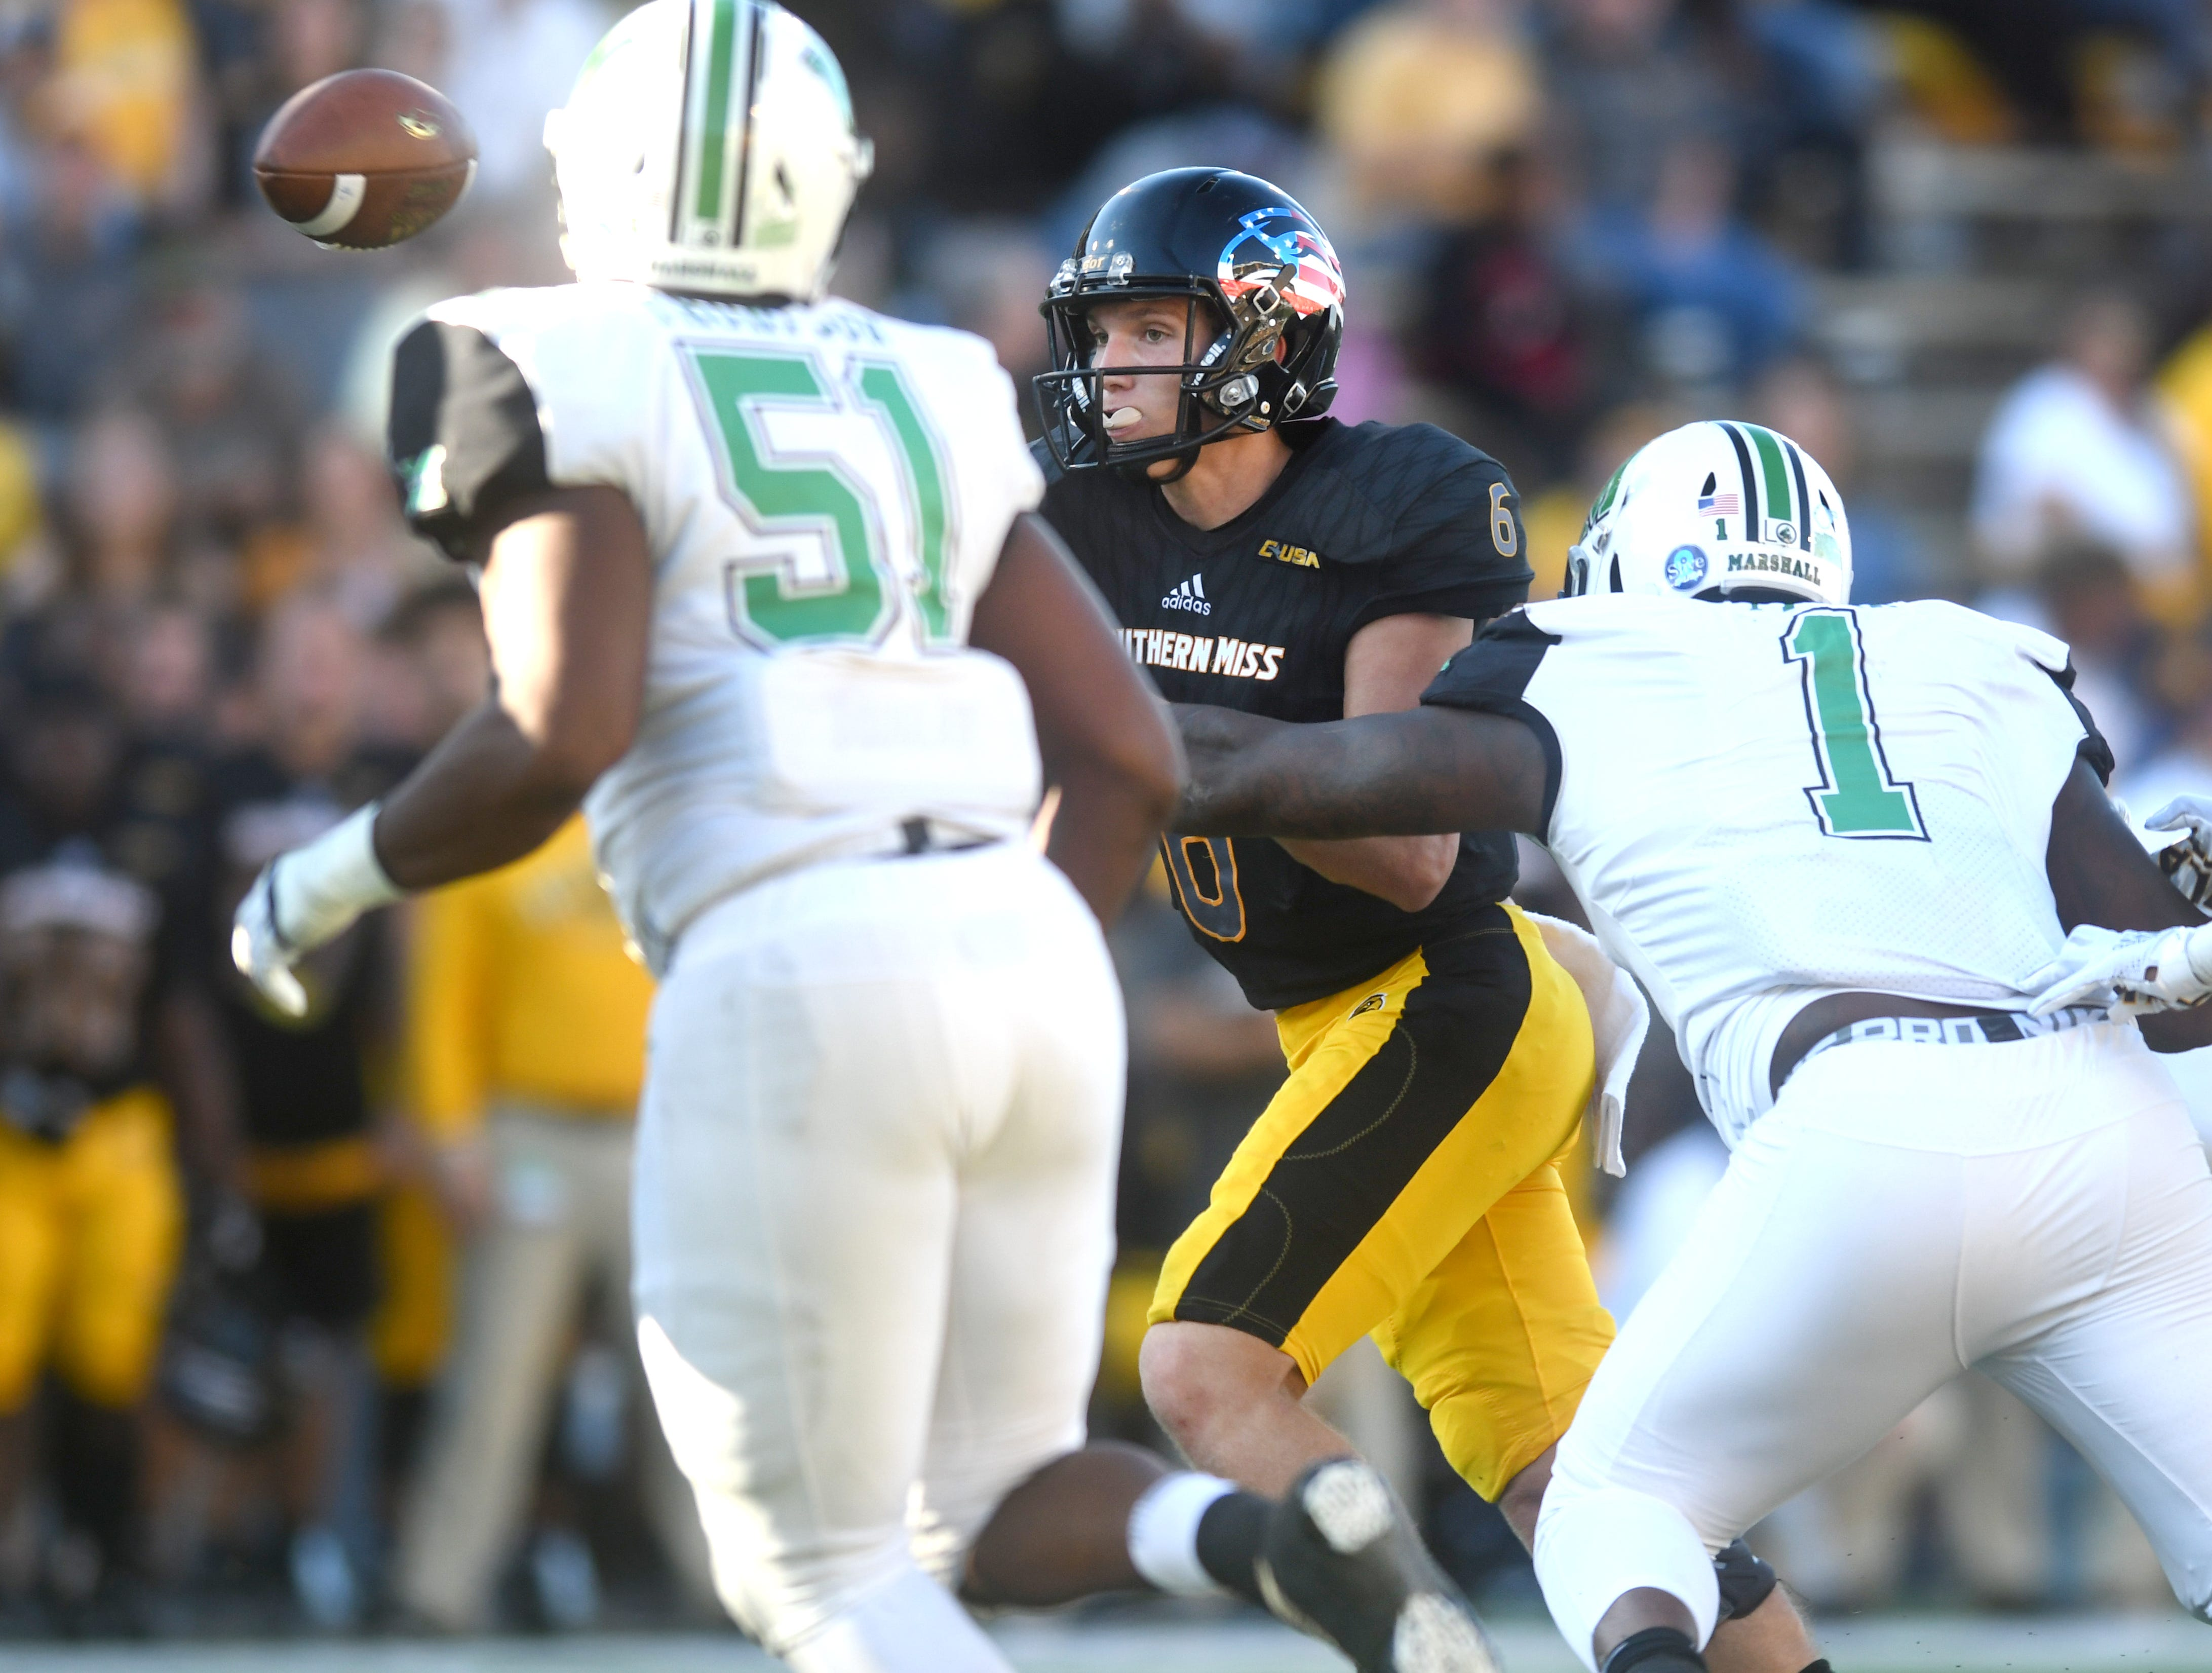 Southern Miss quarterback Tate Whatley throws the ball to a receiver in a game against Marshall at M.M. Roberts Stadium on Saturday, November 3, 2018.